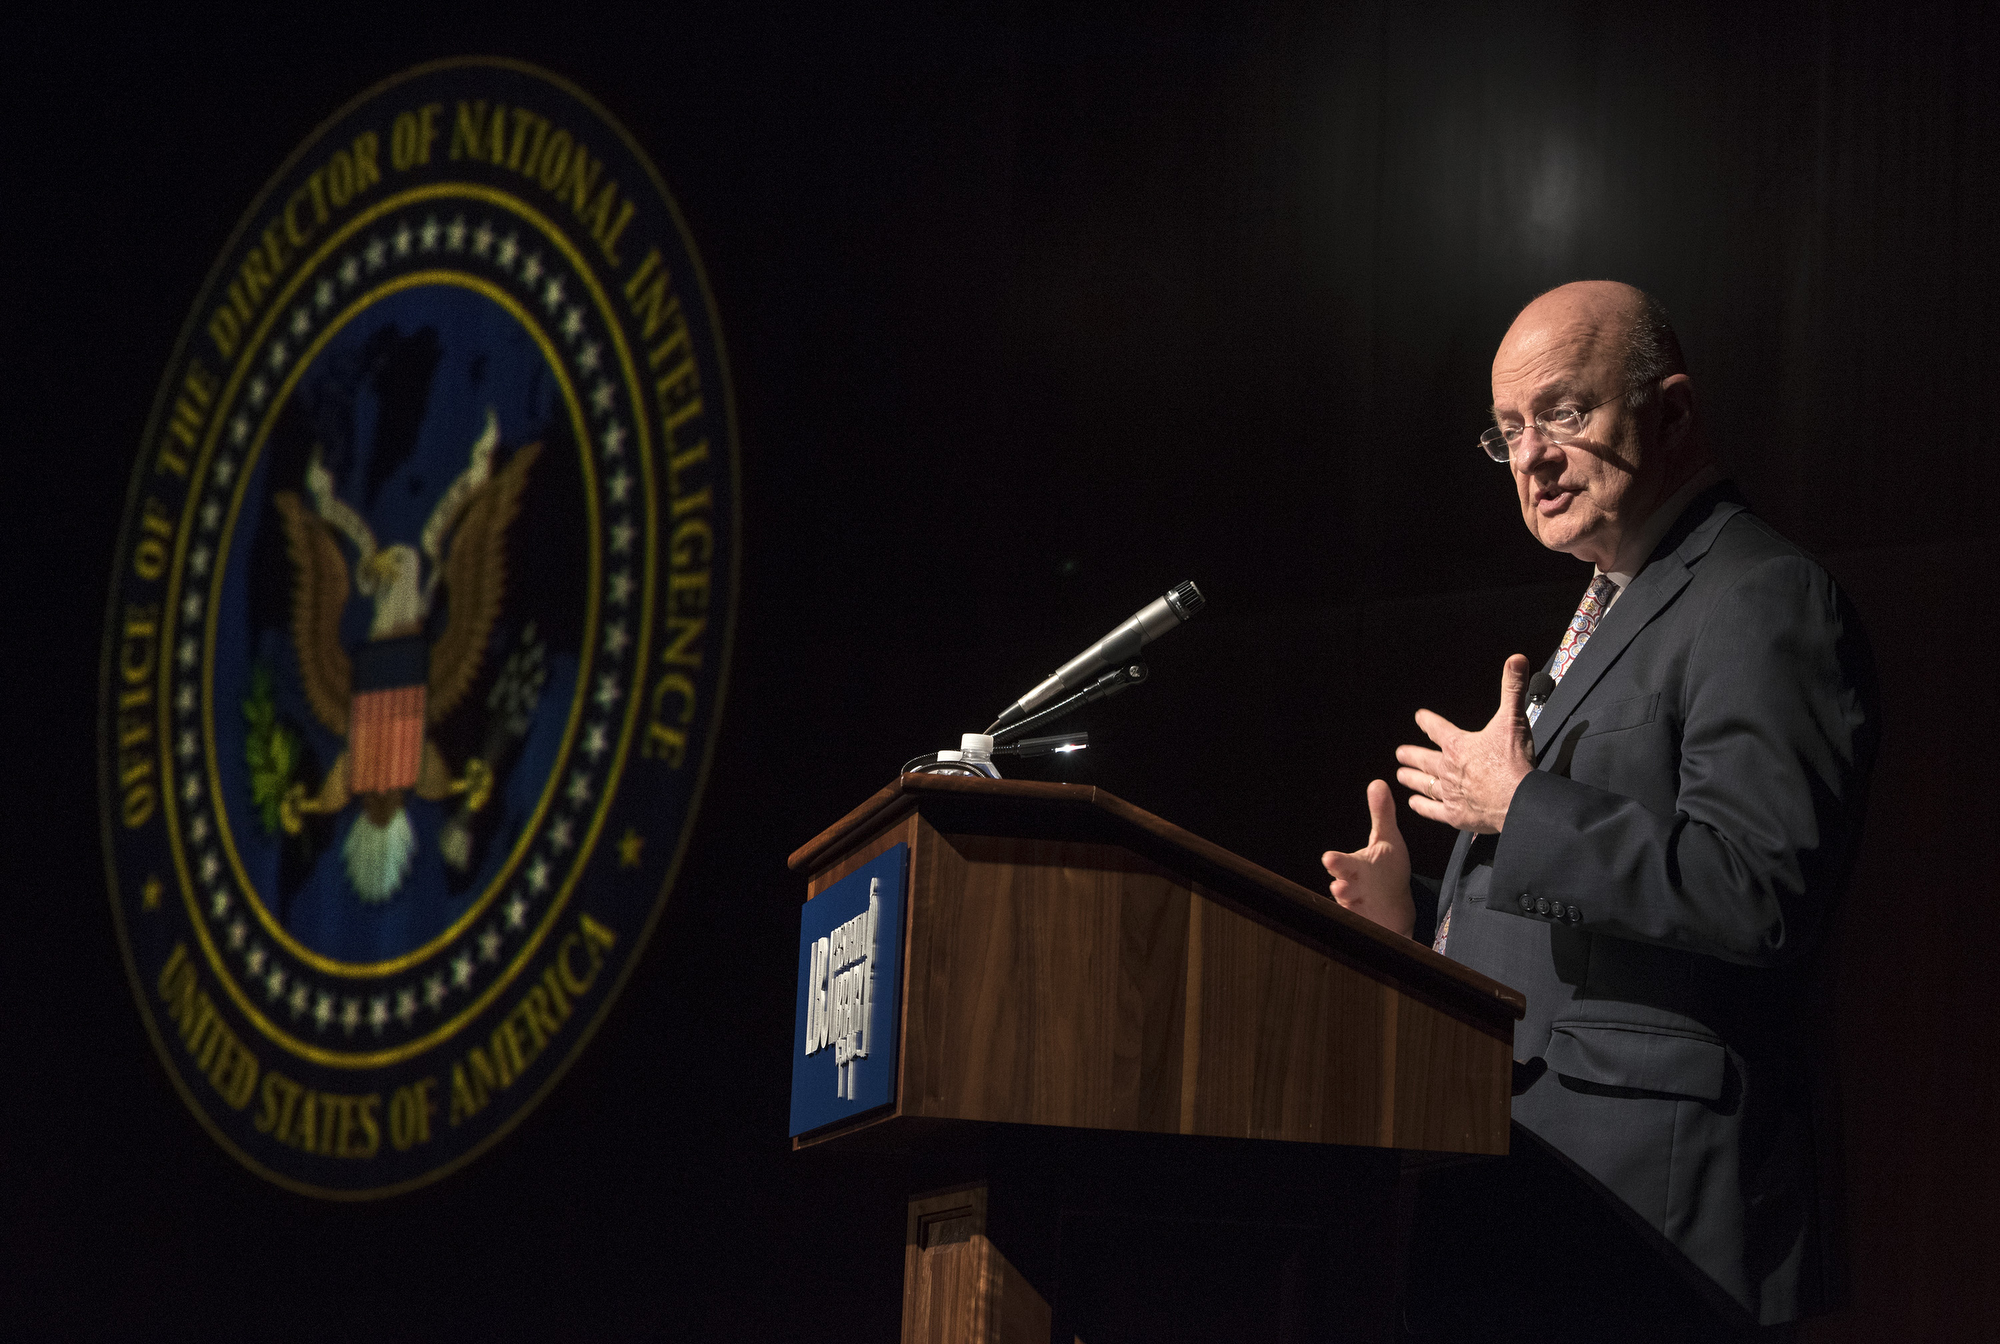 Director of National Intelligence James Clapper In a speech at the LBJ Presidential Library on Thursday, Sept. 22nd, 2016, Director of National Intelligence James Clapper discussed national security as we prepare for an election year change in the White House. Following his remarks, Admiral Bob Inman, former Director of the National Security Agency and Deputy Director of the CIA, and Stephen Hadley, former National Security Advisor, joined Clapper on stage for a conversation moderated by LBJ Library Director Mark Updegrove on the pressing national security issues facing our nation. LBJ Library photo by Jay Godwin 09/22/2016 LBJ Library photo by Jay Godwin 09/18/2016